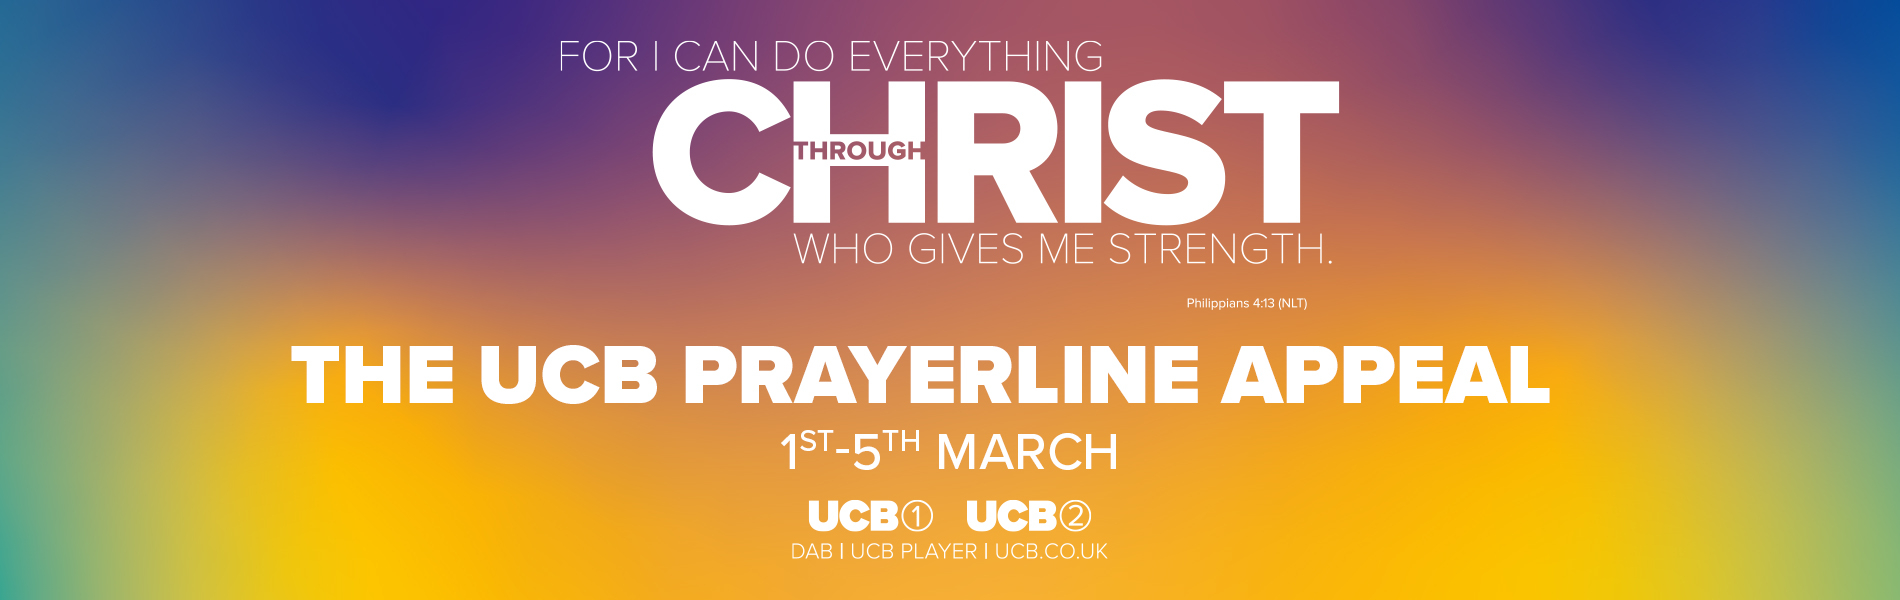 The UCB Prayerline Appeal, 1ST – 5TH MARCH UCB 1 UCB 2